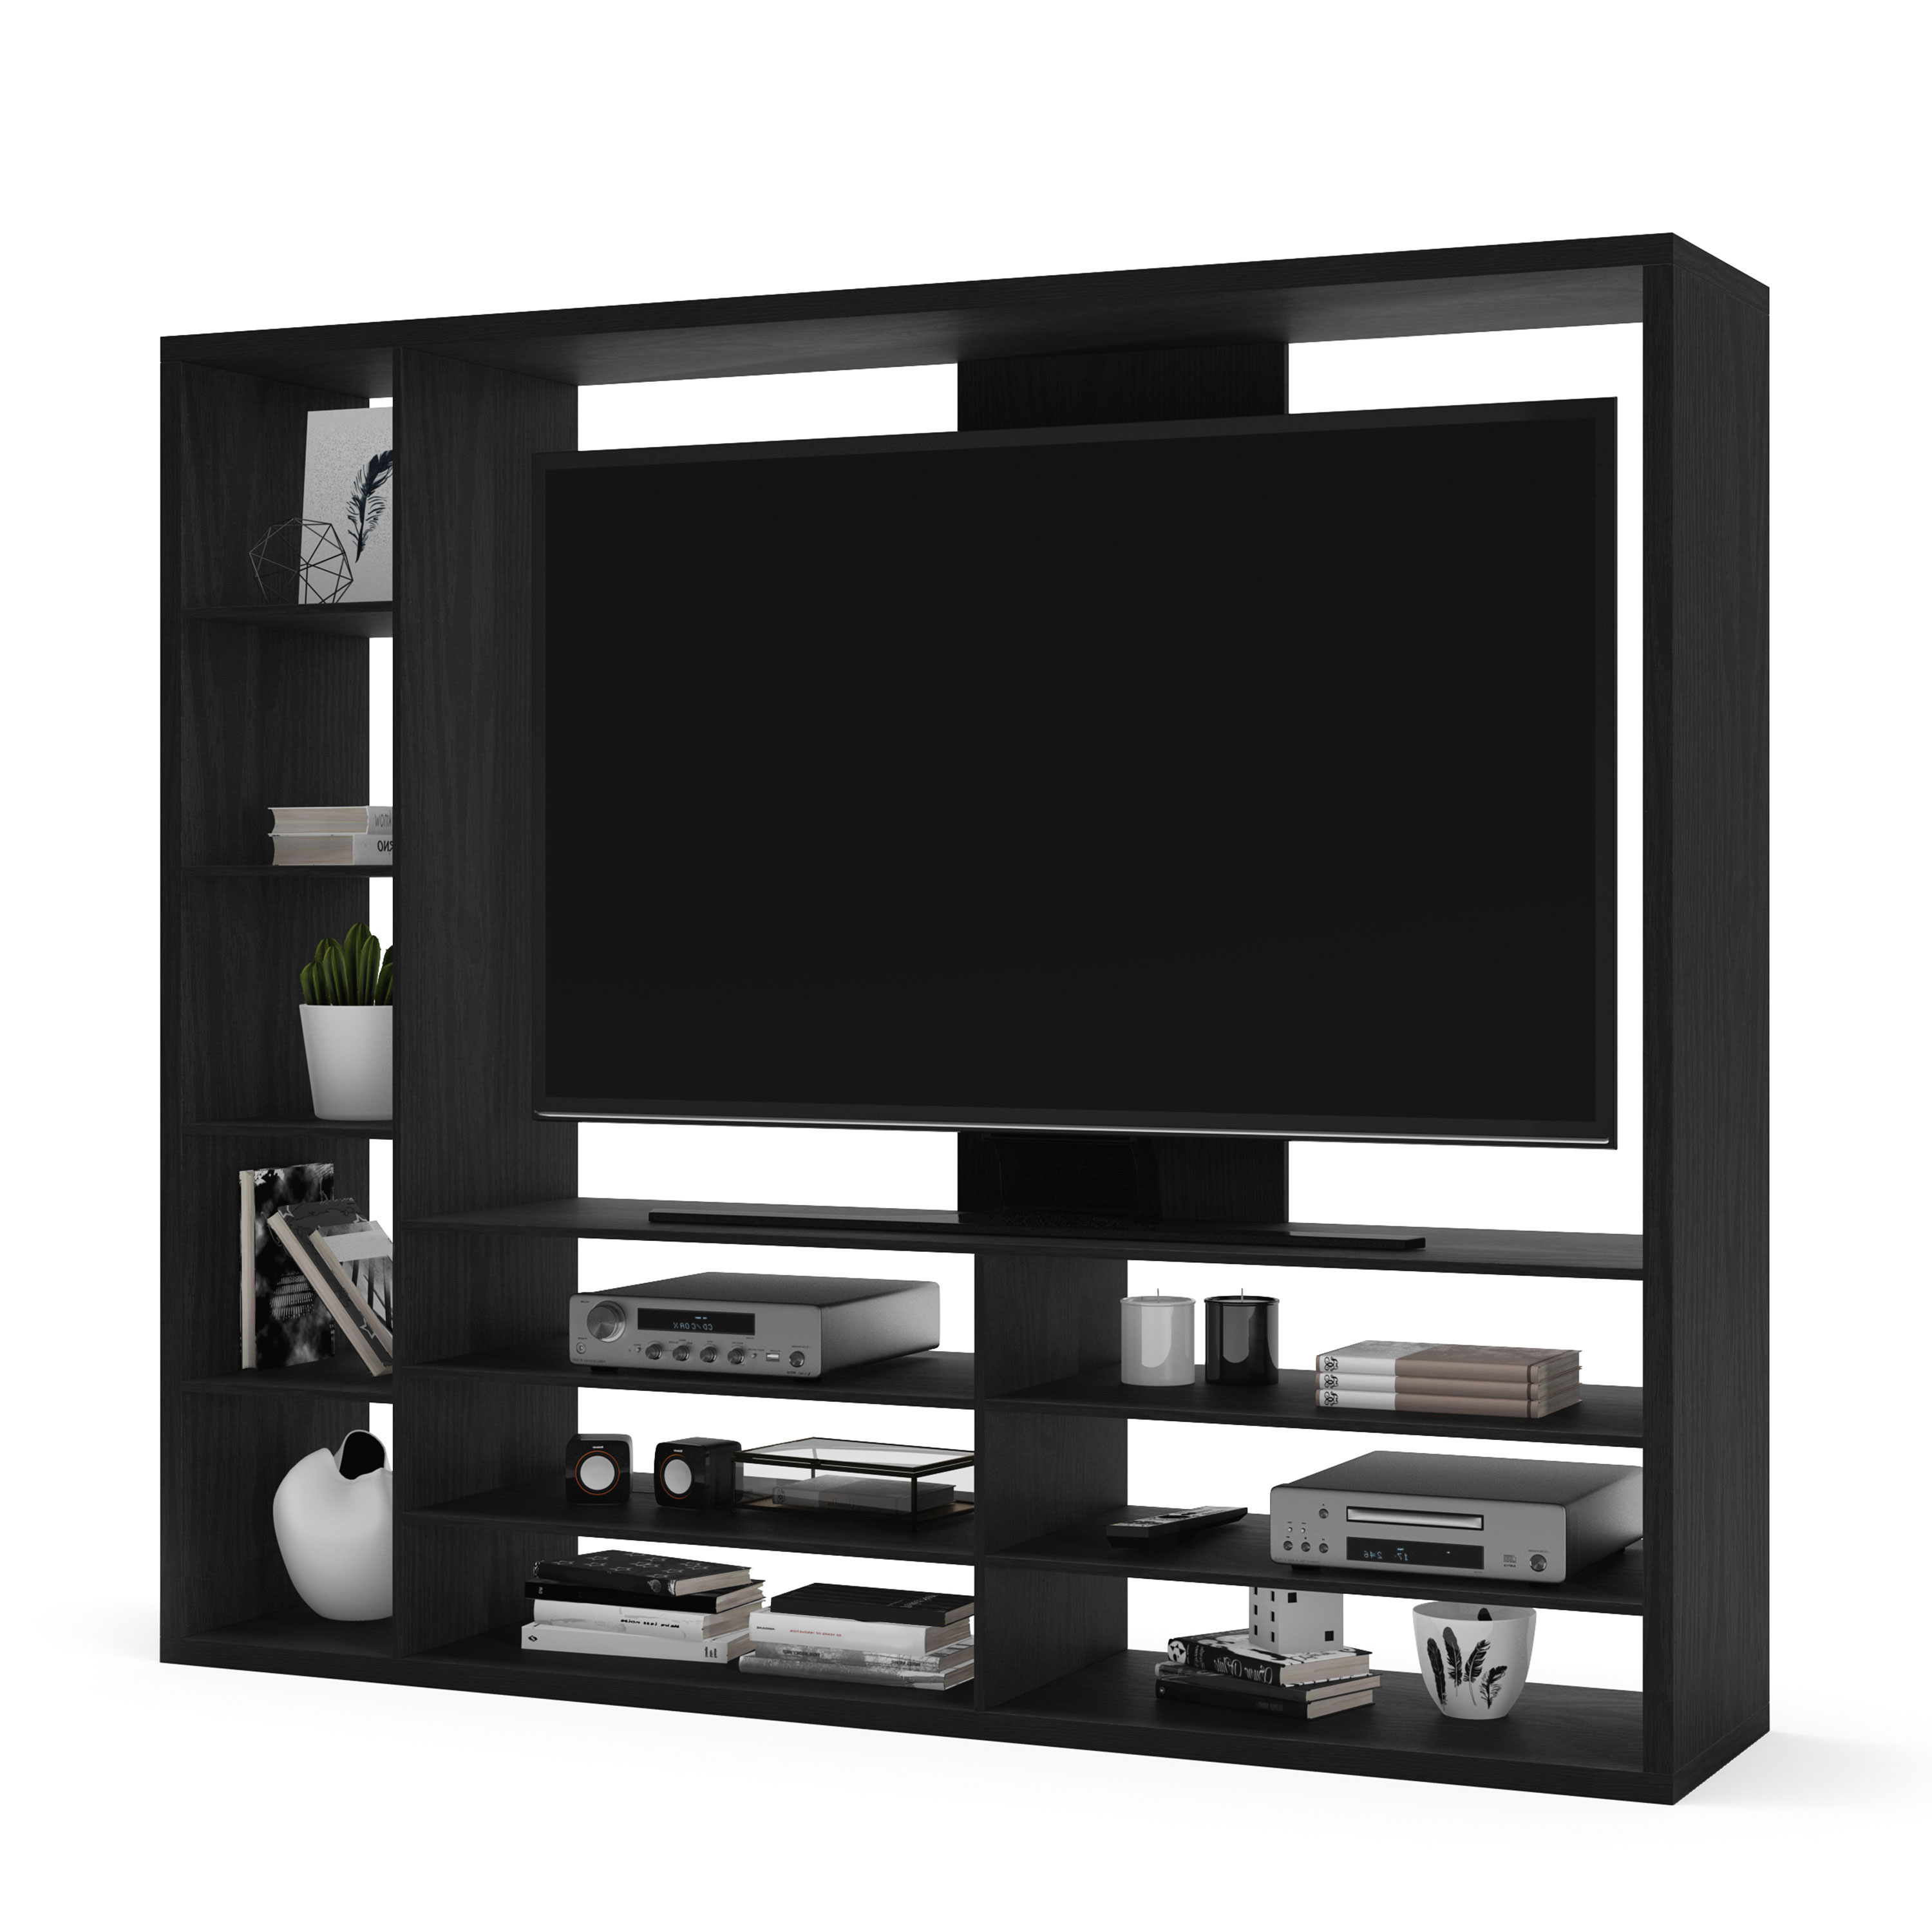 "Most Recent Mainstays Entertainment Center For Tvs Up To 55"", Ideal Tv Stand For In Canyon 64 Inch Tv Stands (View 19 of 20)"